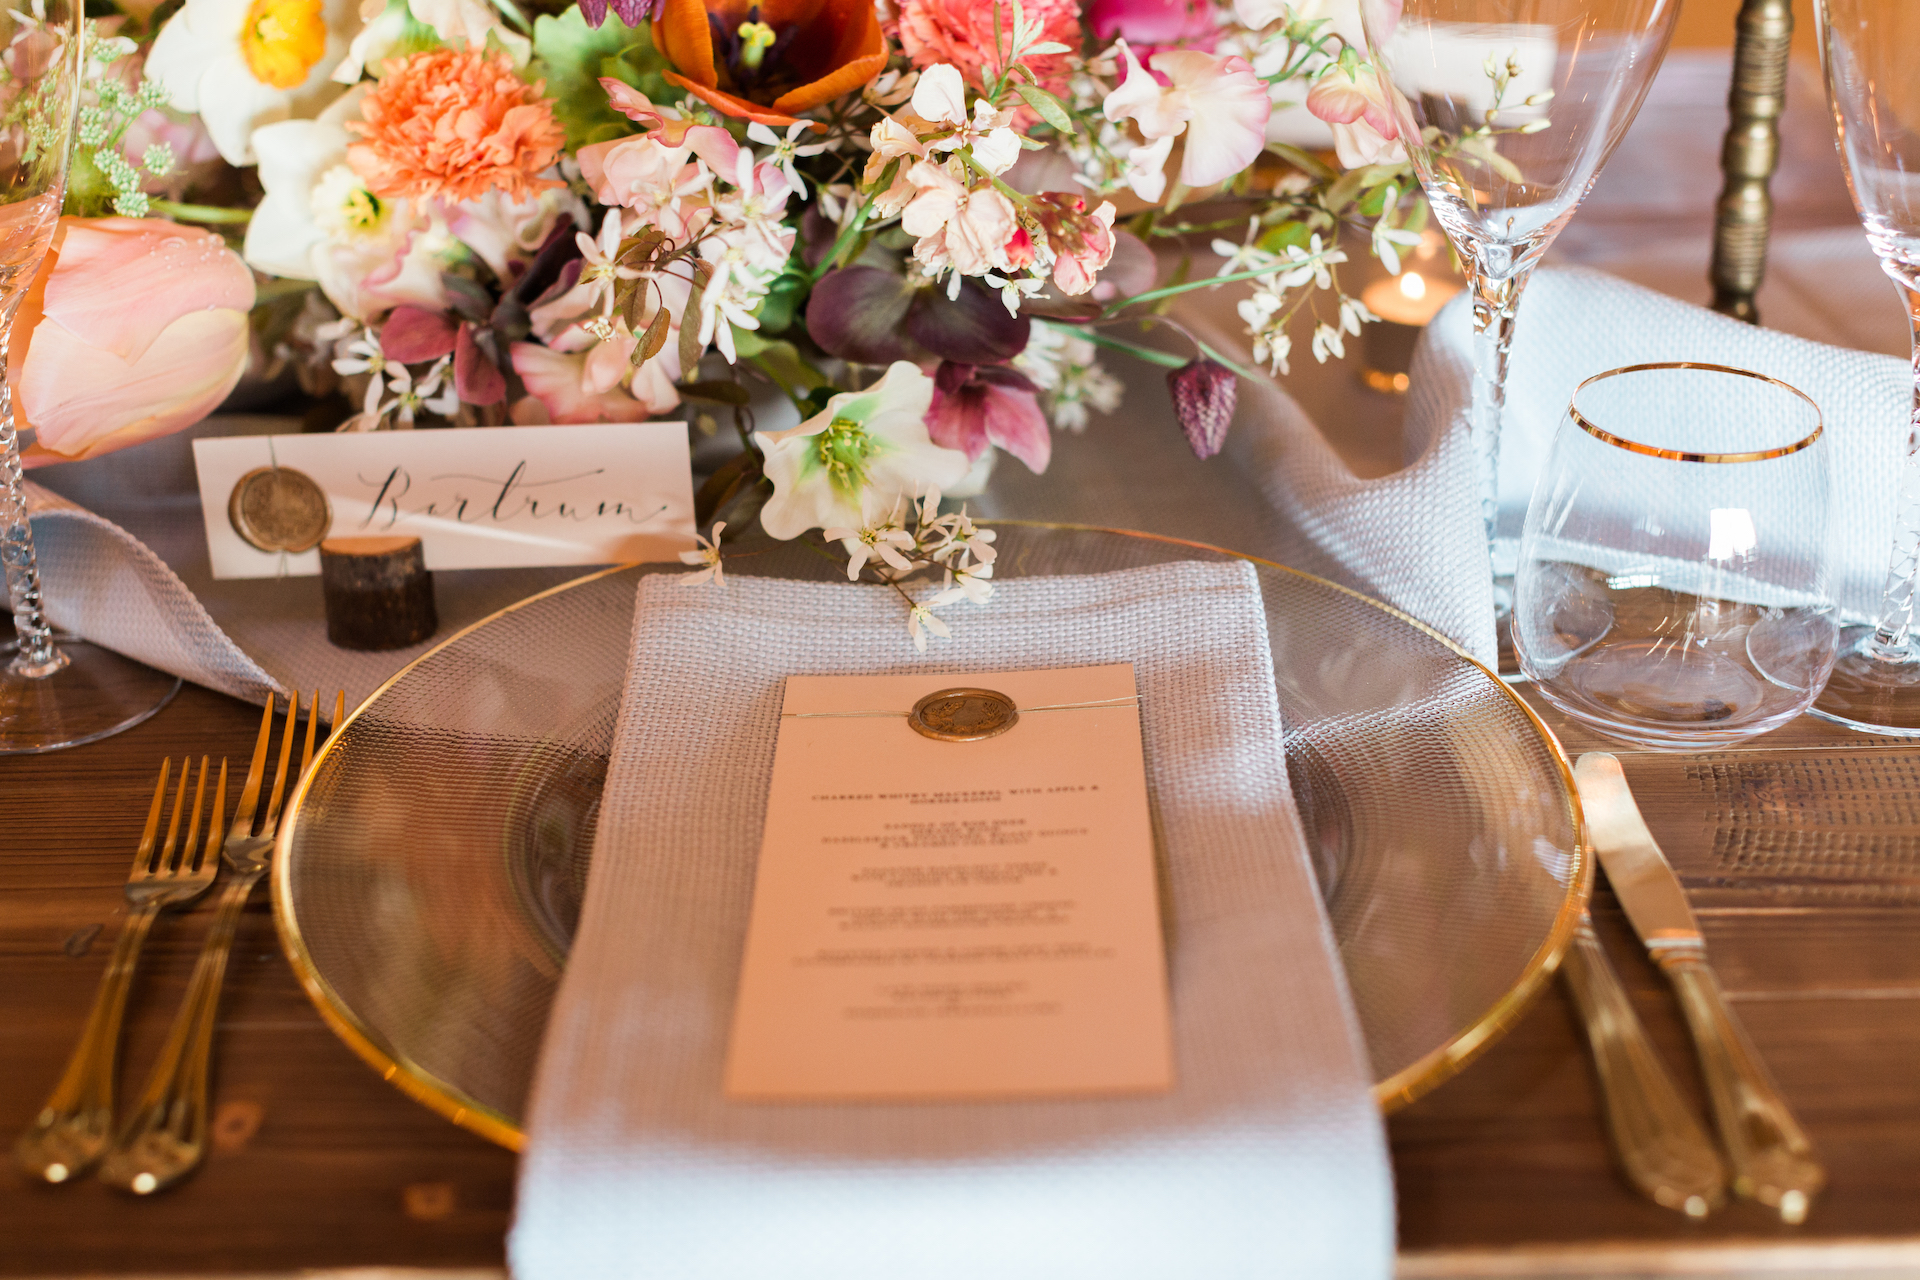 PapaKåta Spring Open Weekend Teepee captured by Lucy Davenport Photography: Farmhouse Tables with floral centrepieces by Aelisabet Flowers, Crockery by White House Event Crockery & Stationery by Lonetree